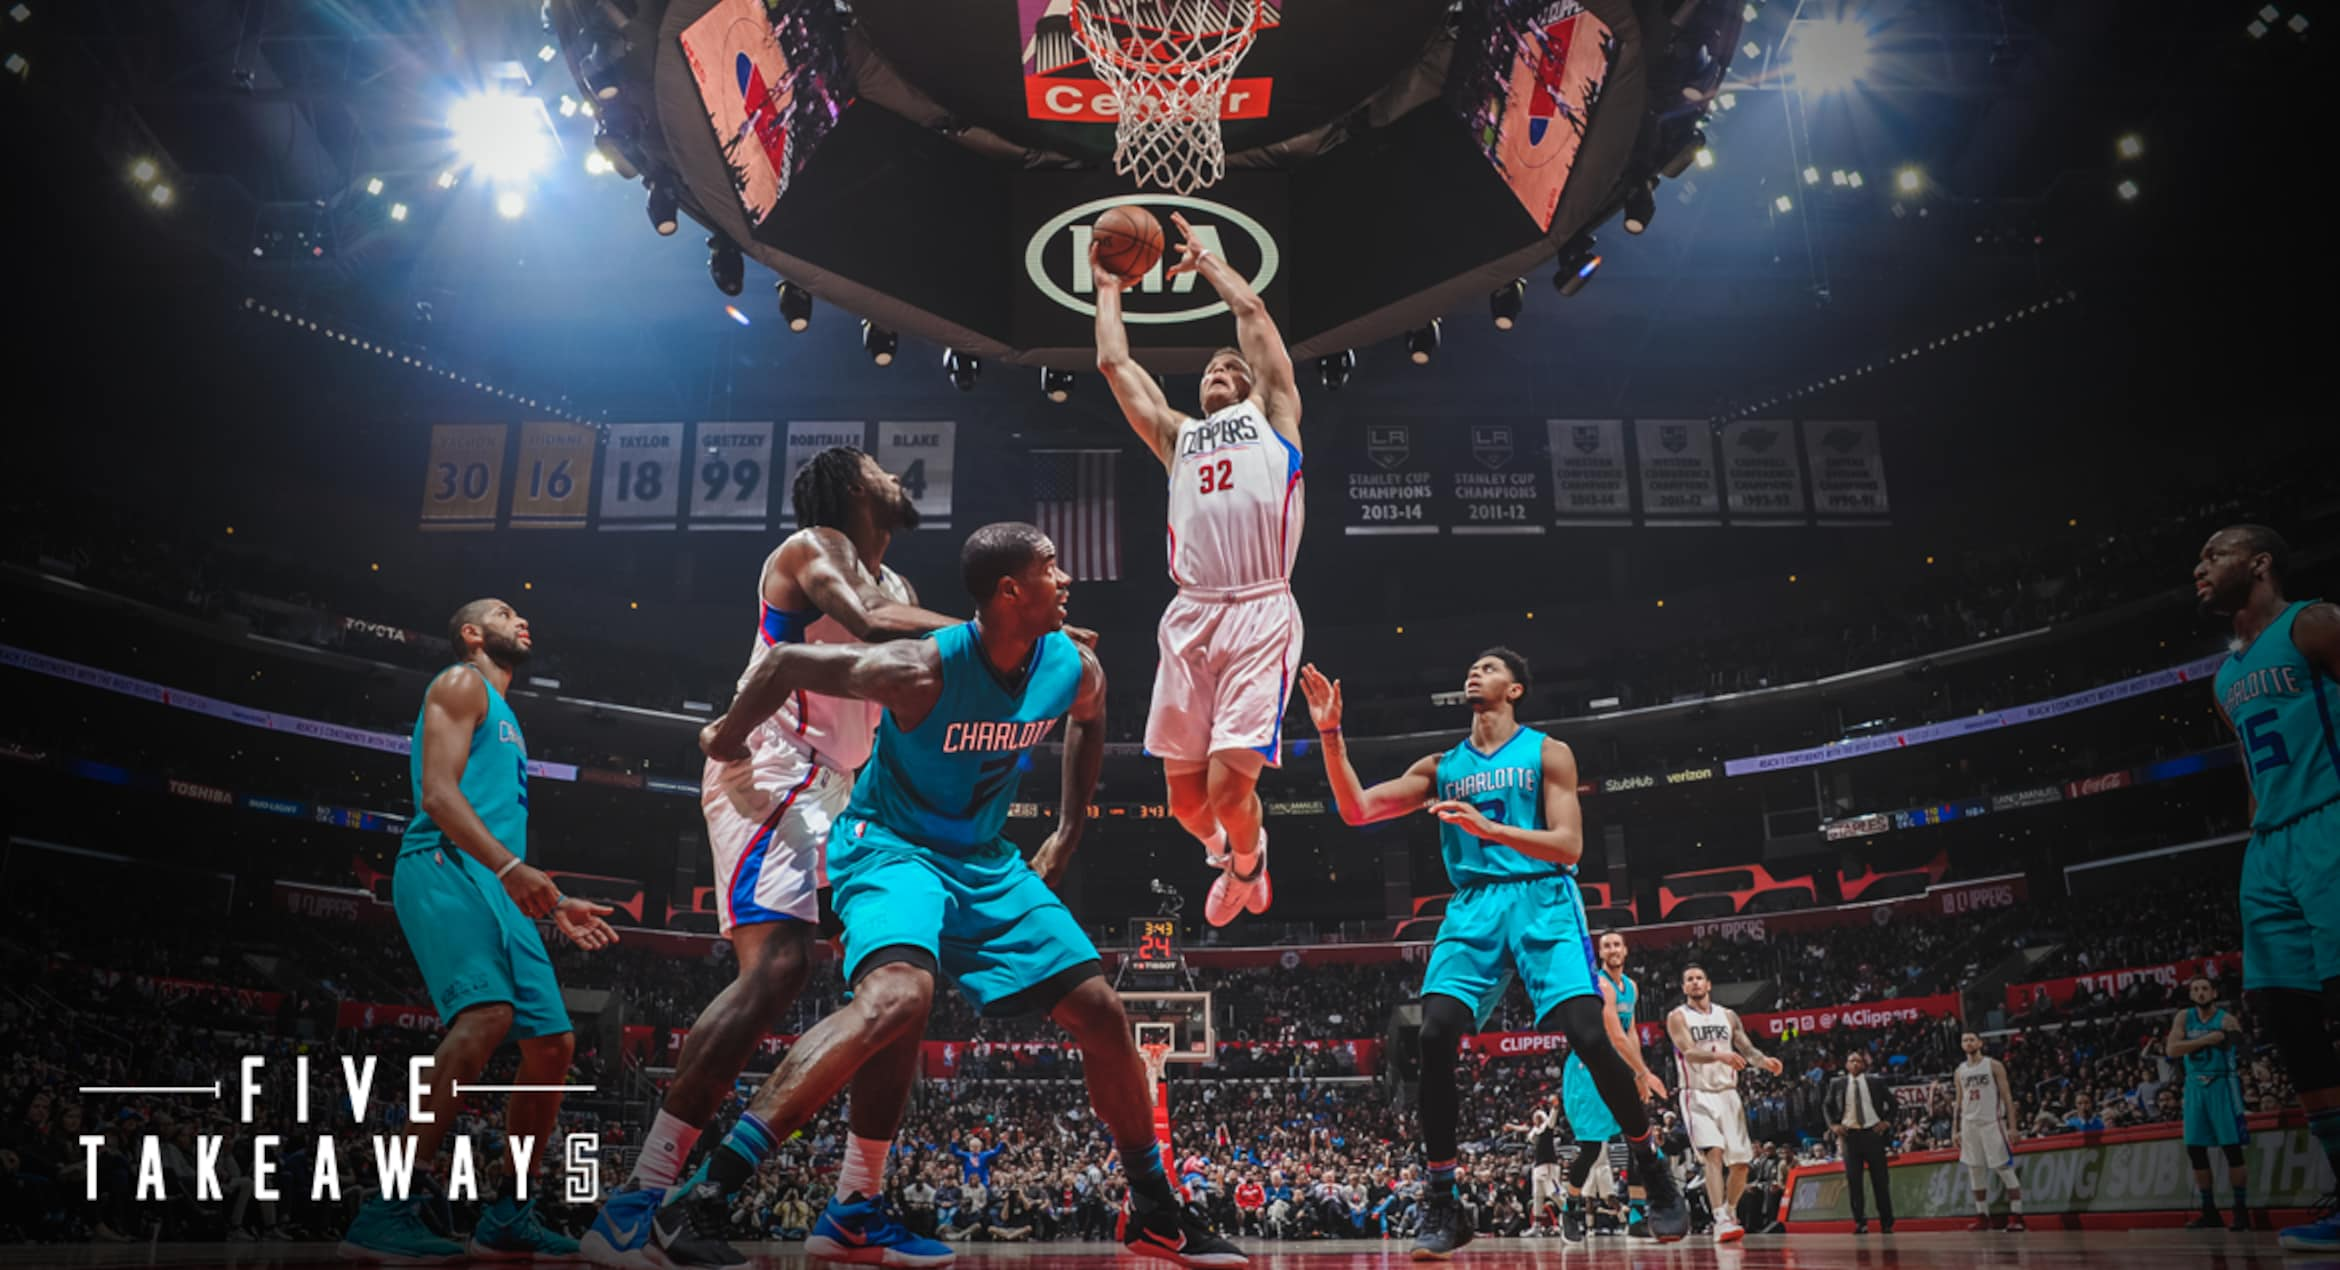 Five Takeaways: Griffin, Clippers Finish Off Hornets In OT